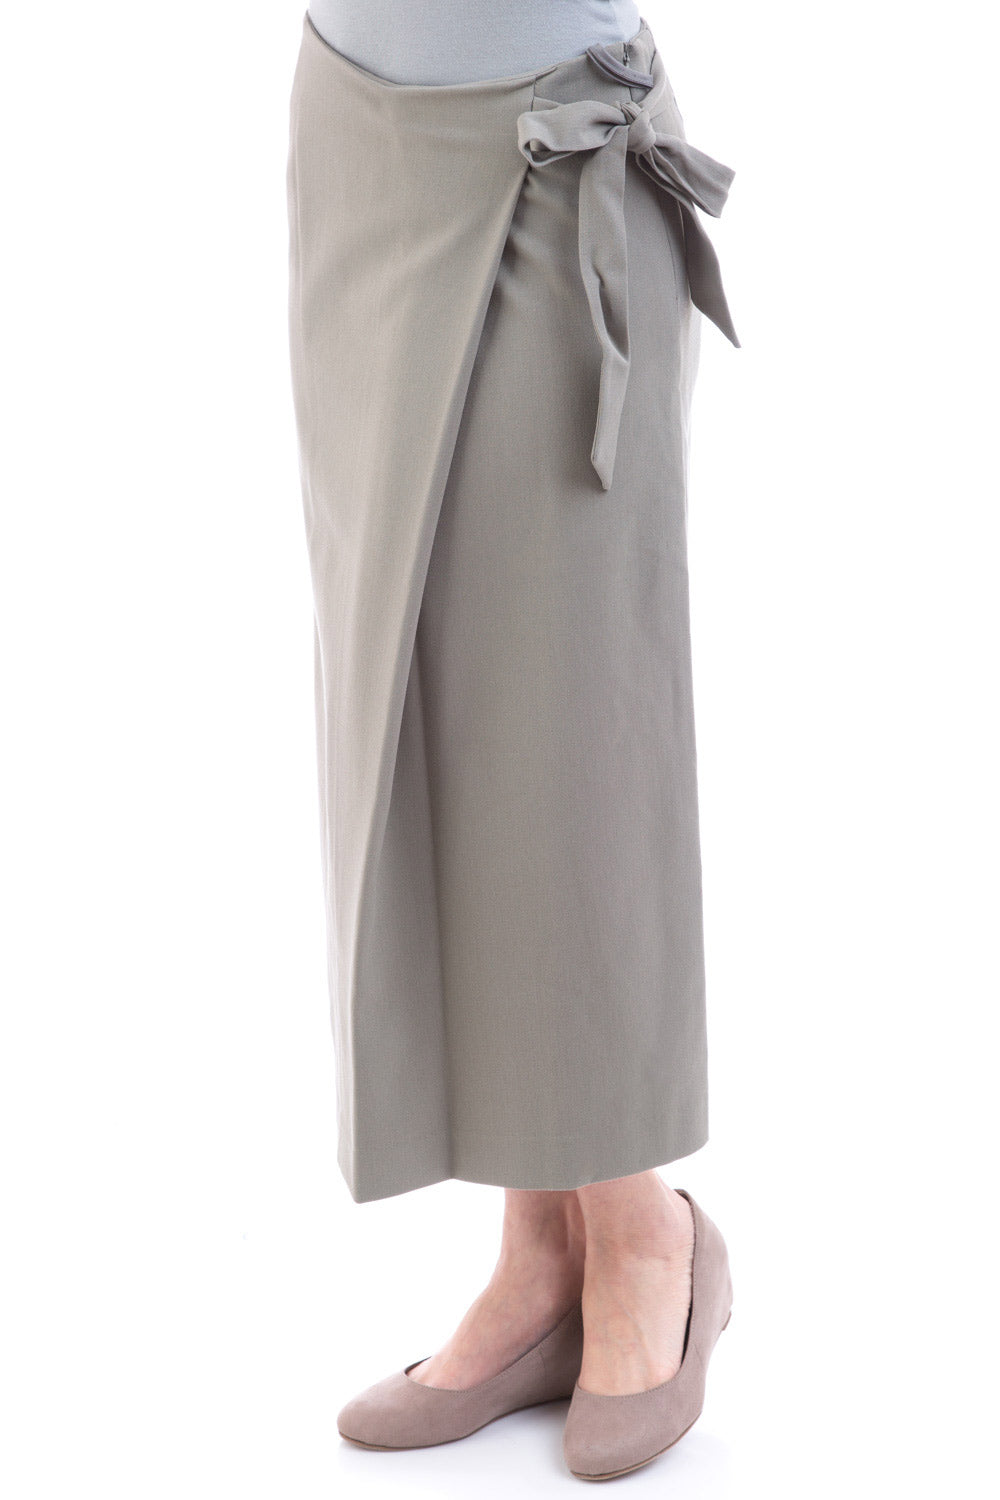 Type 2 Olive You Too Skirt